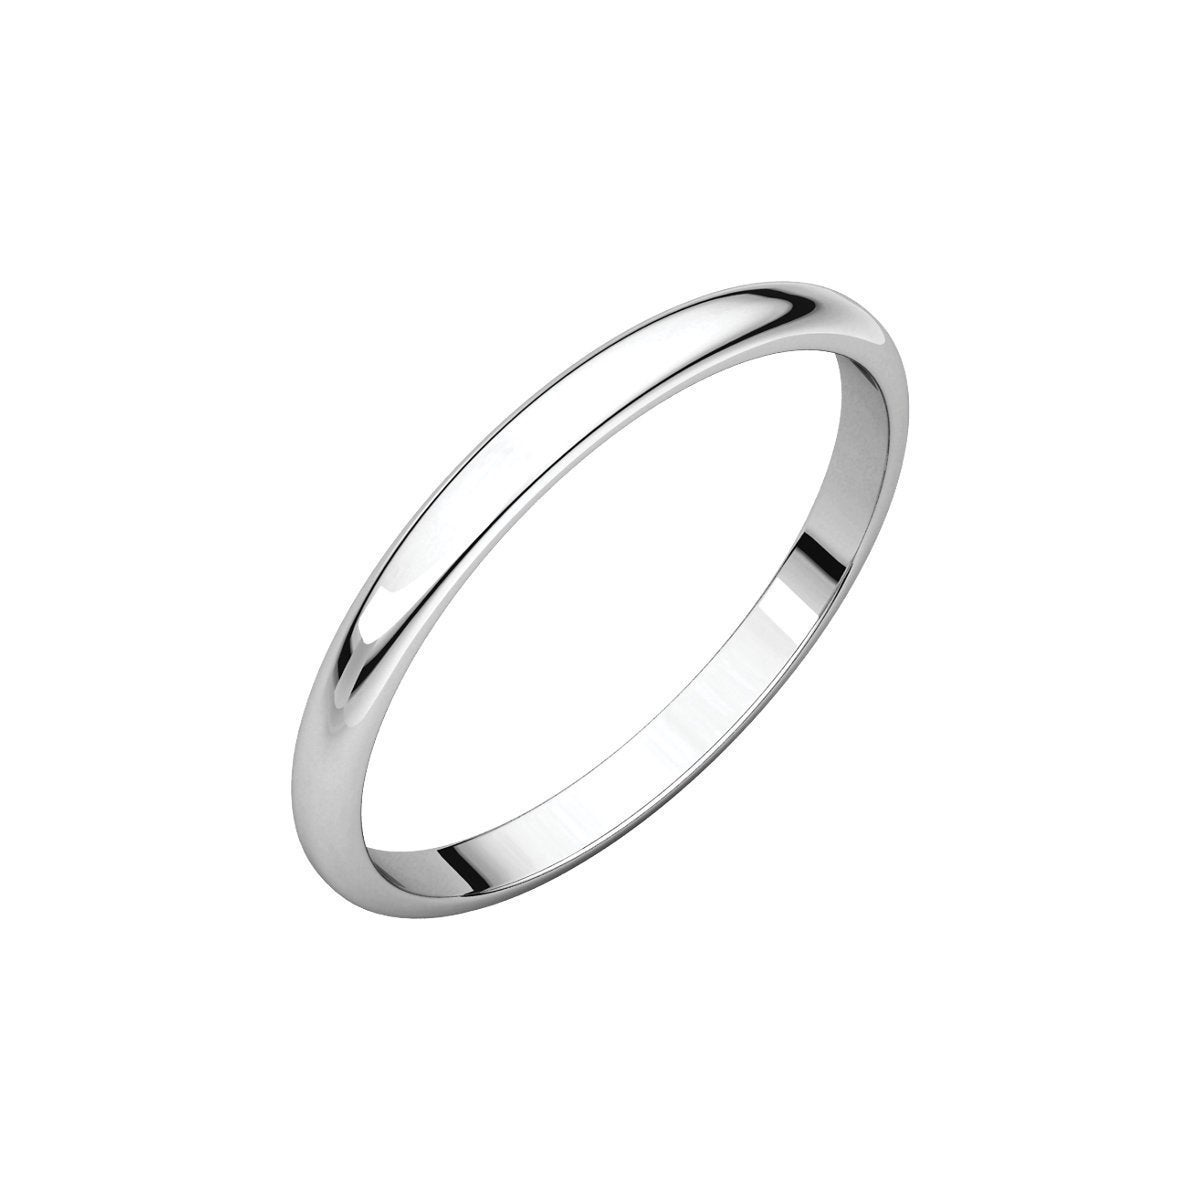 10k White Gold 2 Mm Half Round Wedding Band: Thin Wedding Bands For Women Arthritis At Websimilar.org